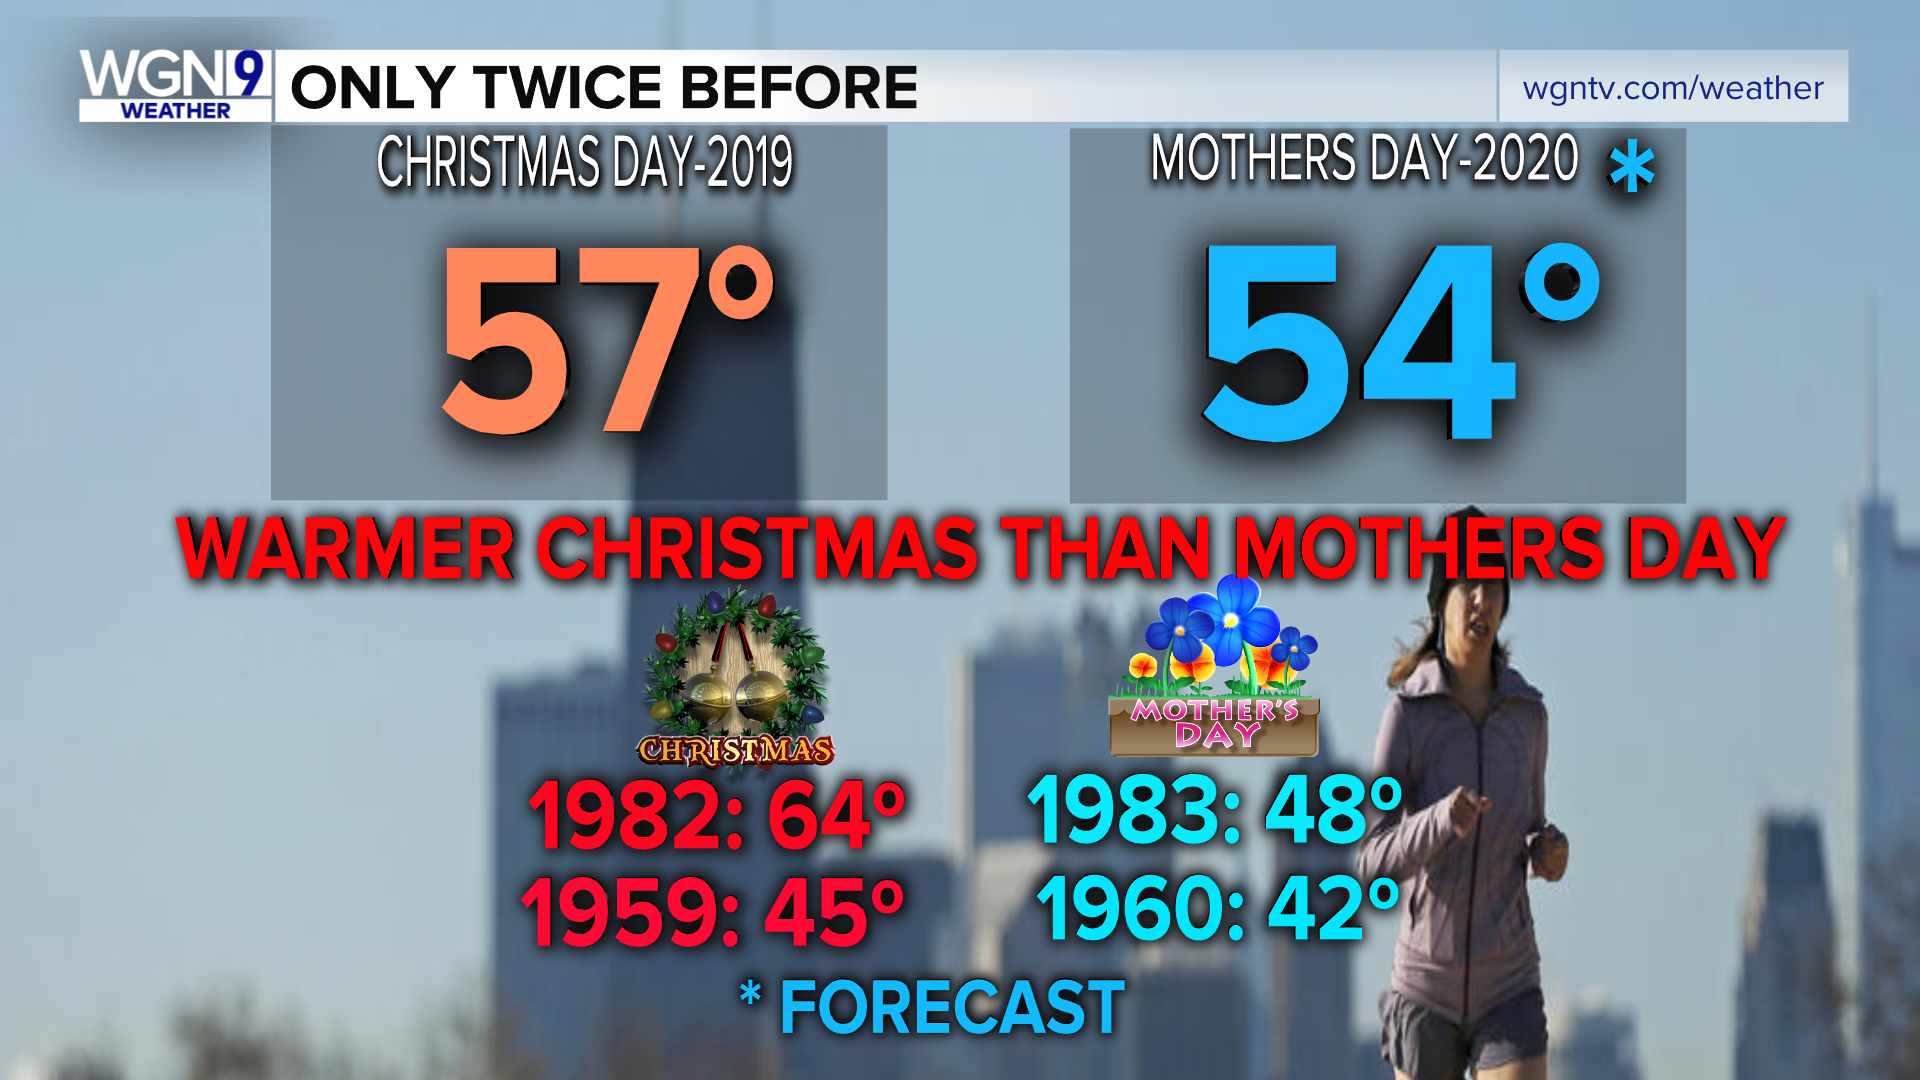 Weather For Christmas Day 2020 It will be colder on Mother's Day than it was on Christmas | WGN TV